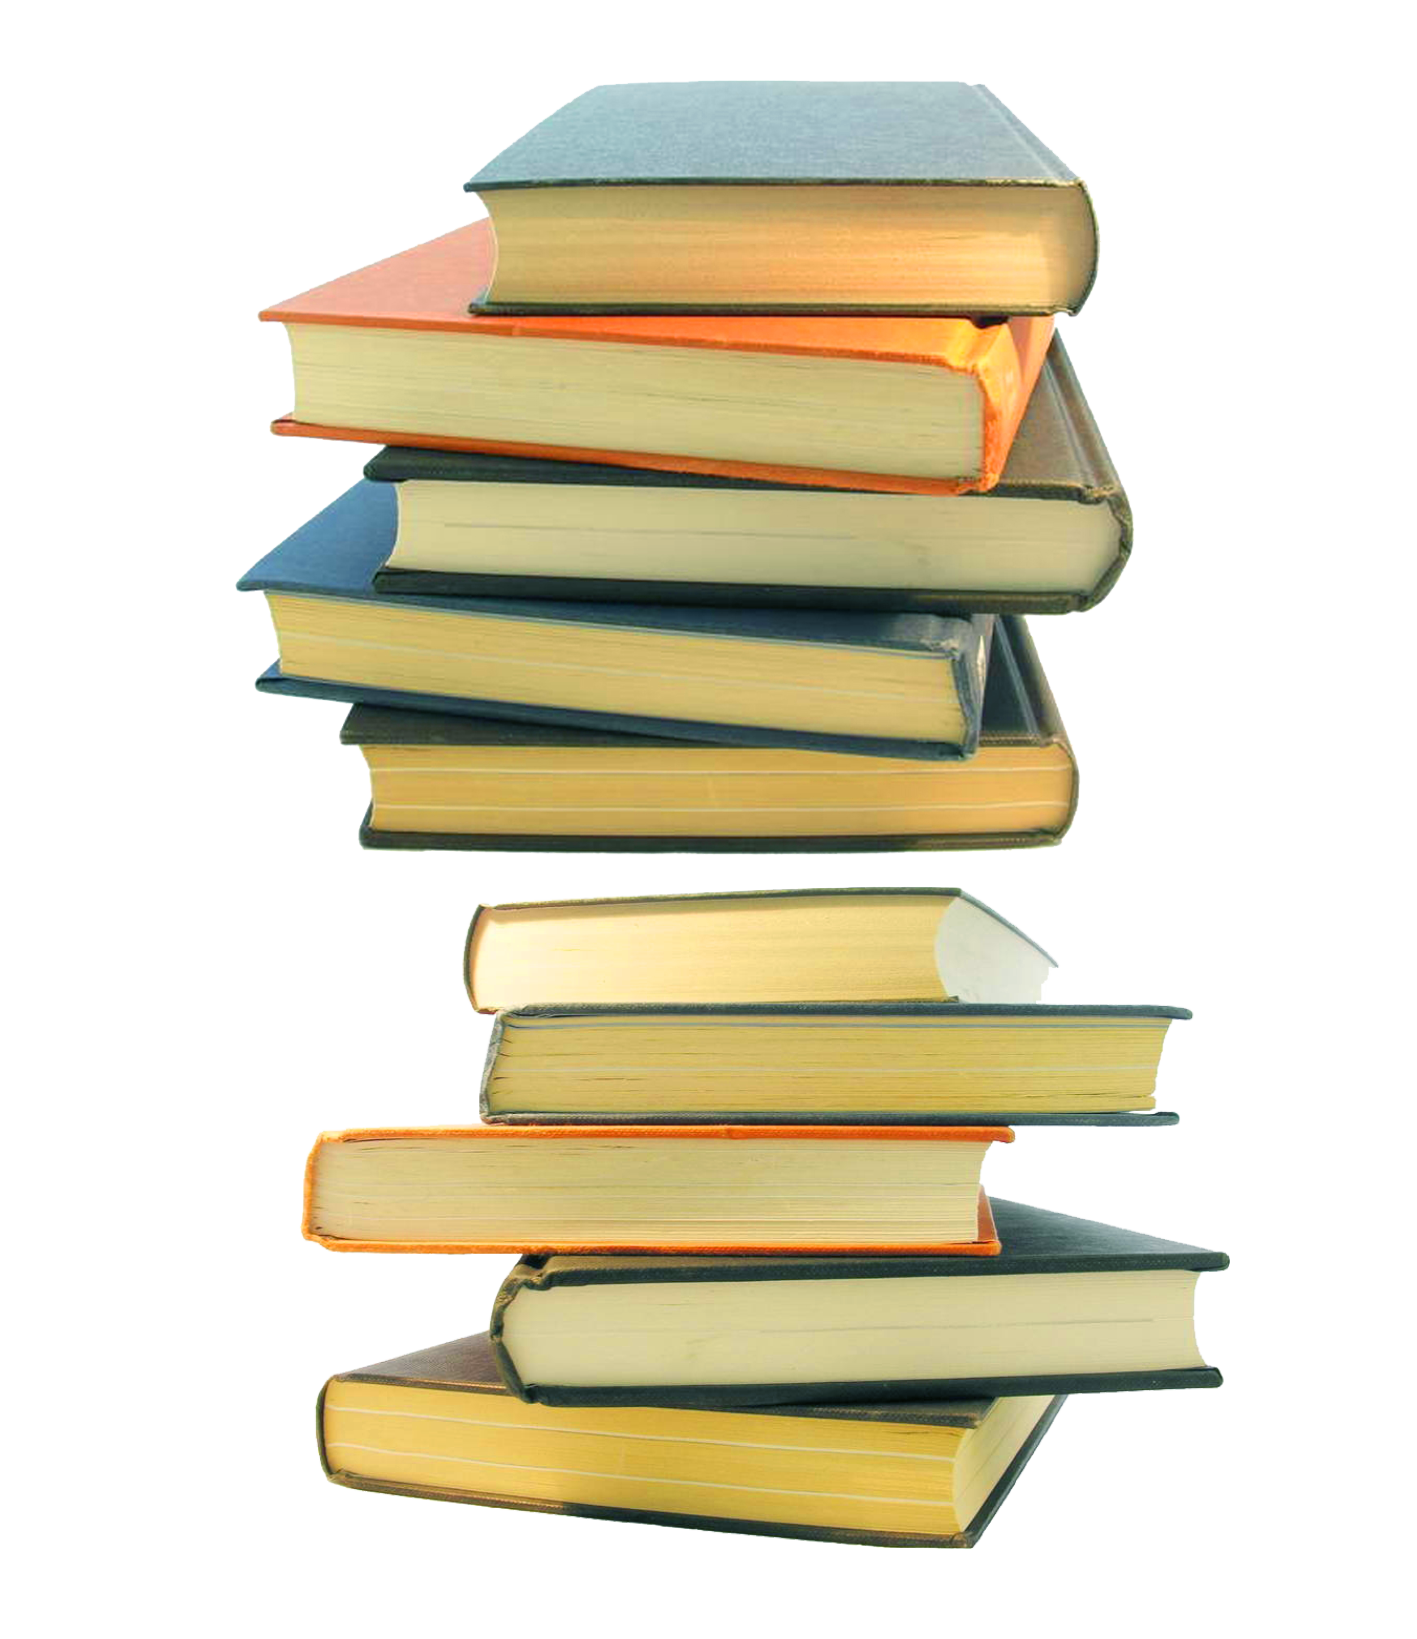 Pile of books png. Book transprent free download